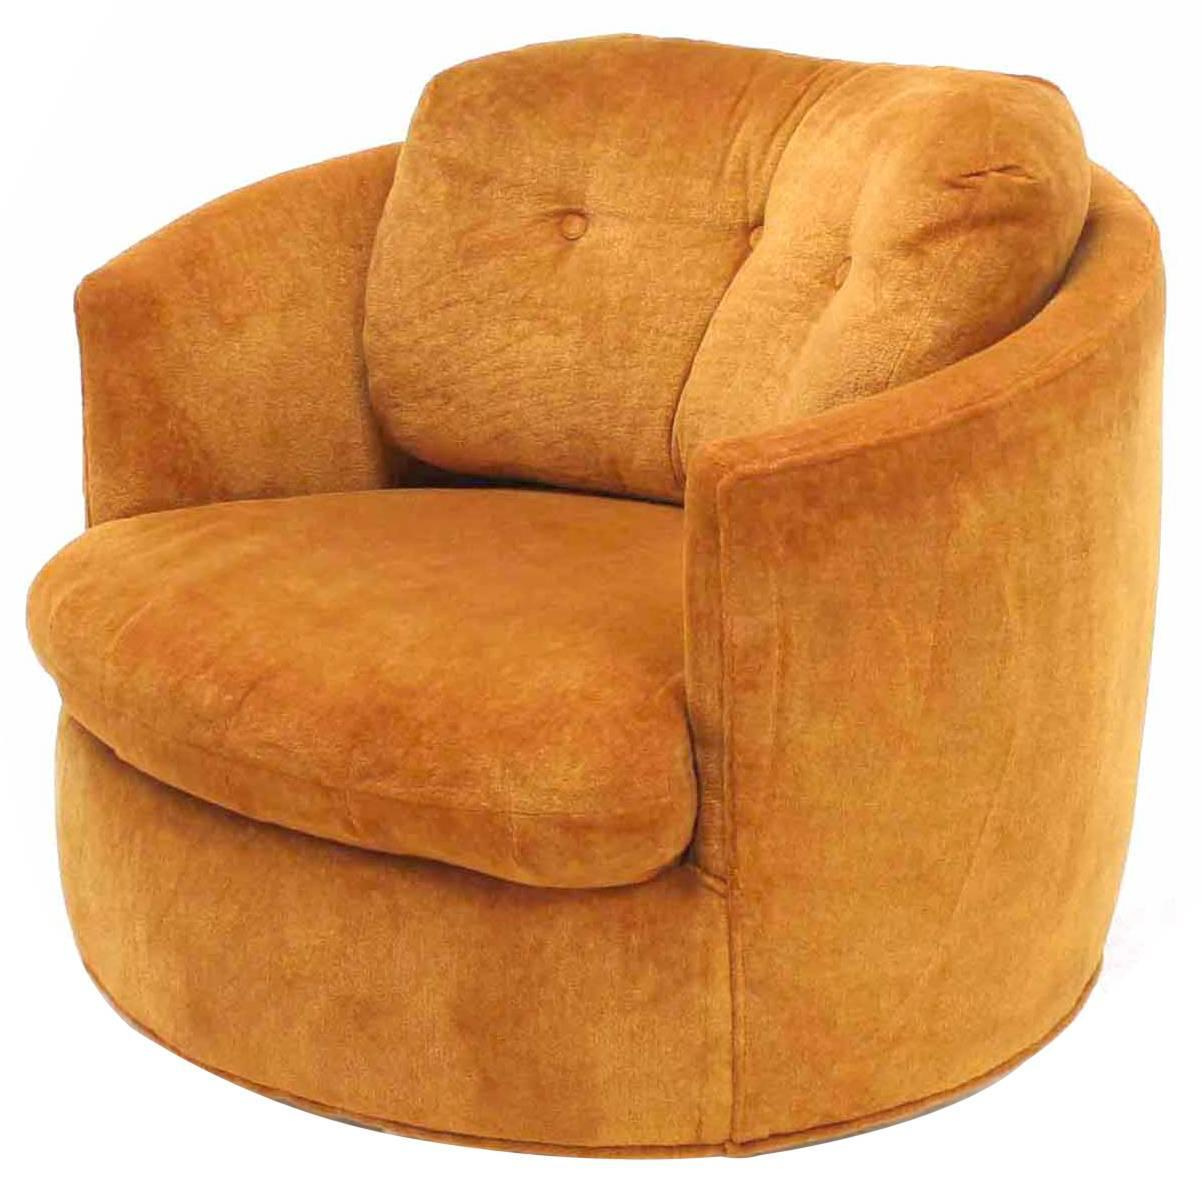 swivel chair round rocking lawn folding mid century modern barrel back lounge